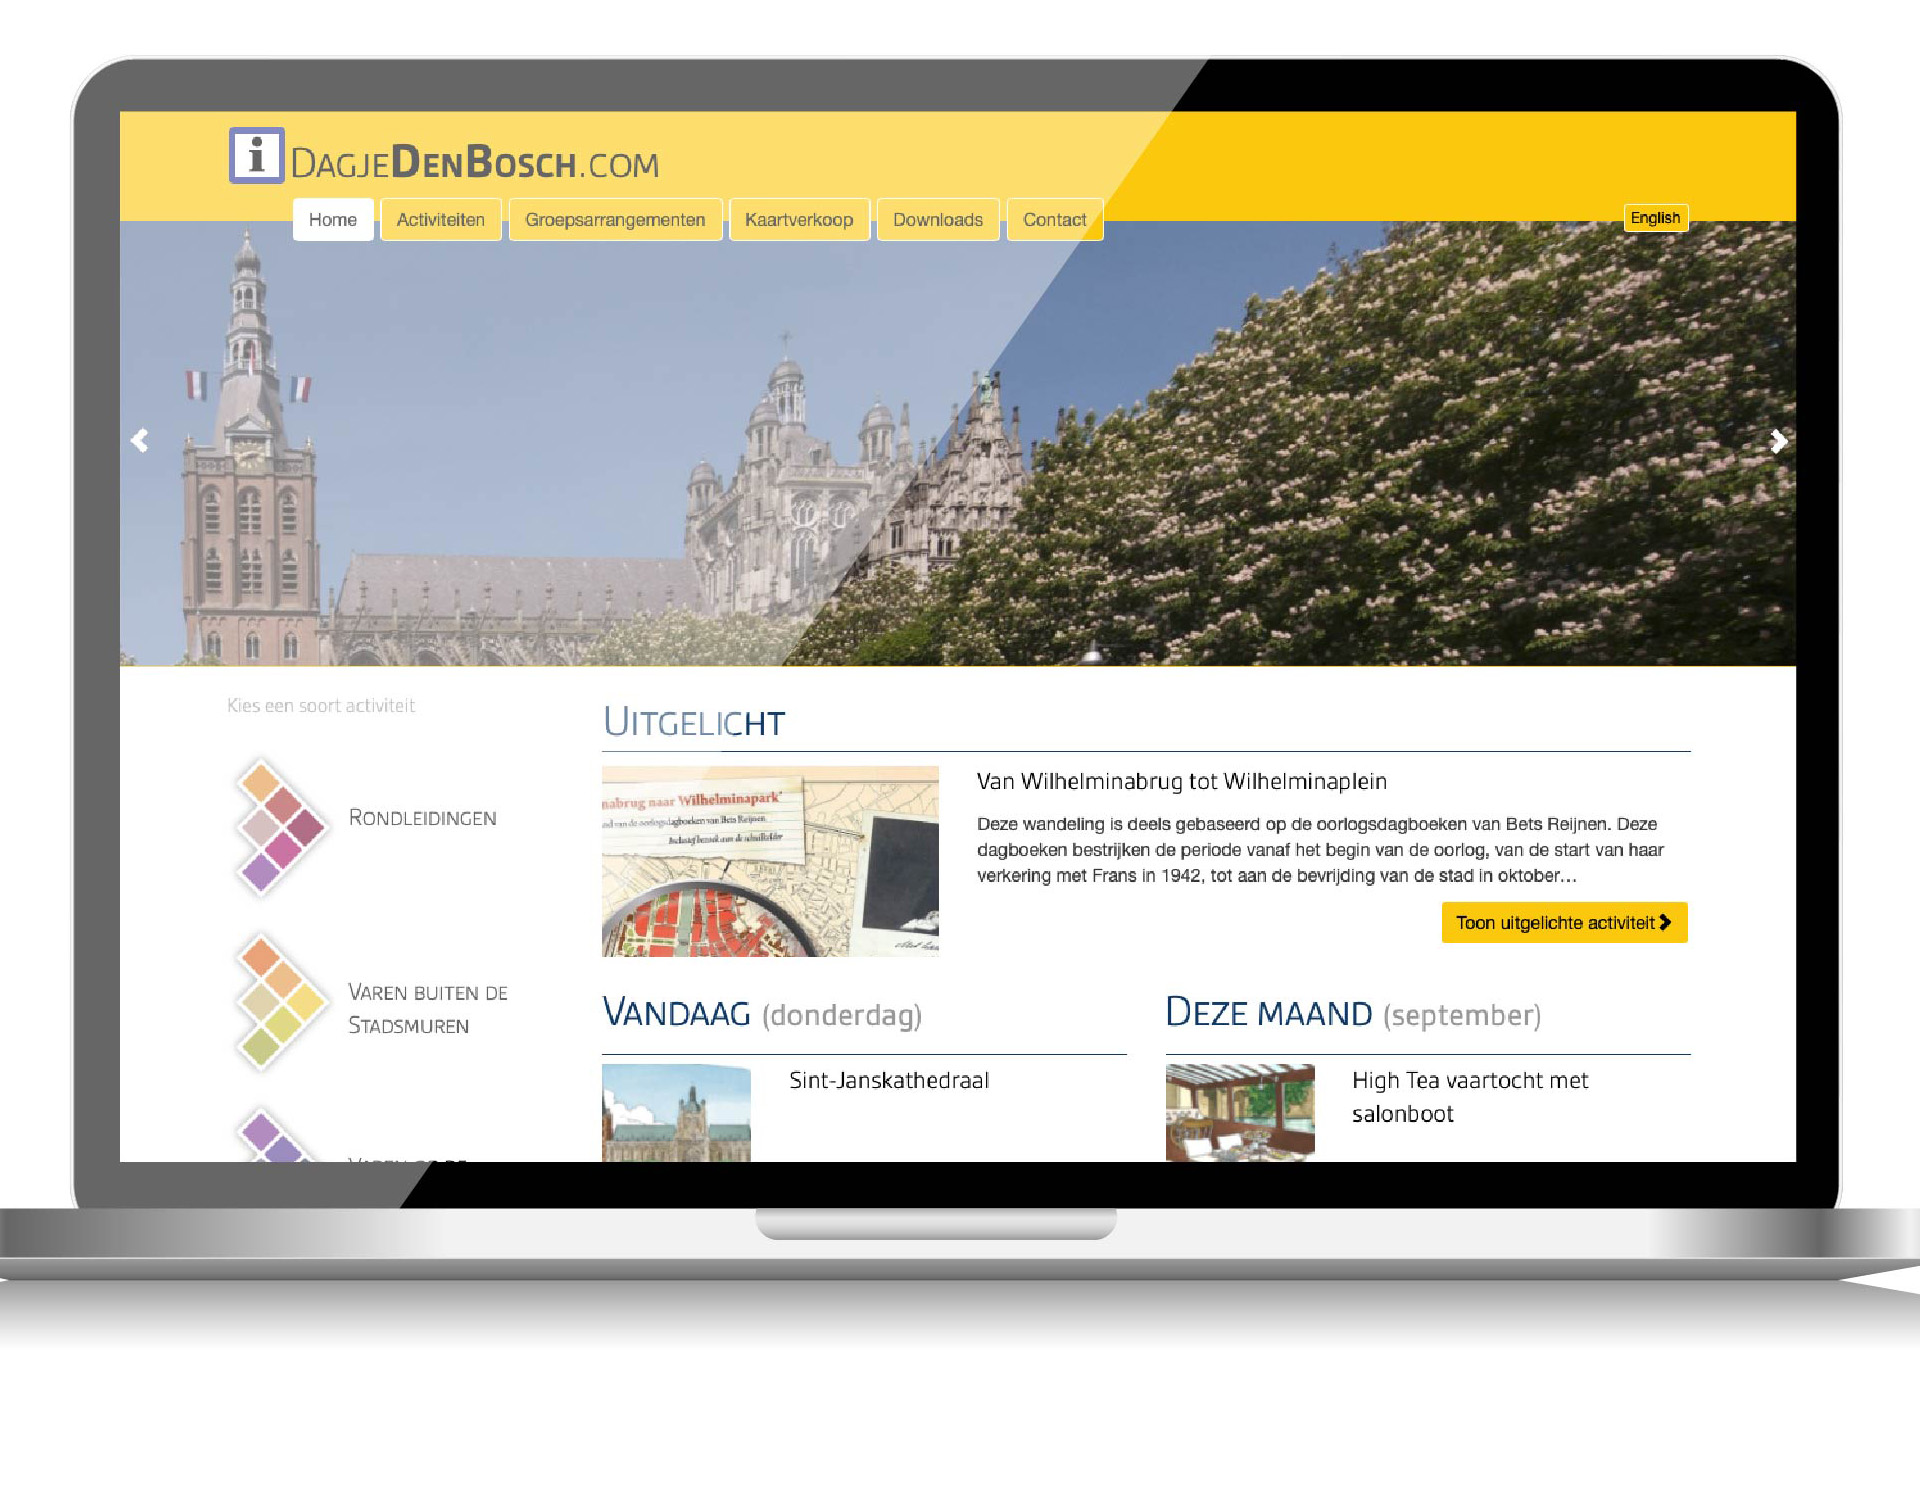 Website DagjeDenBosch